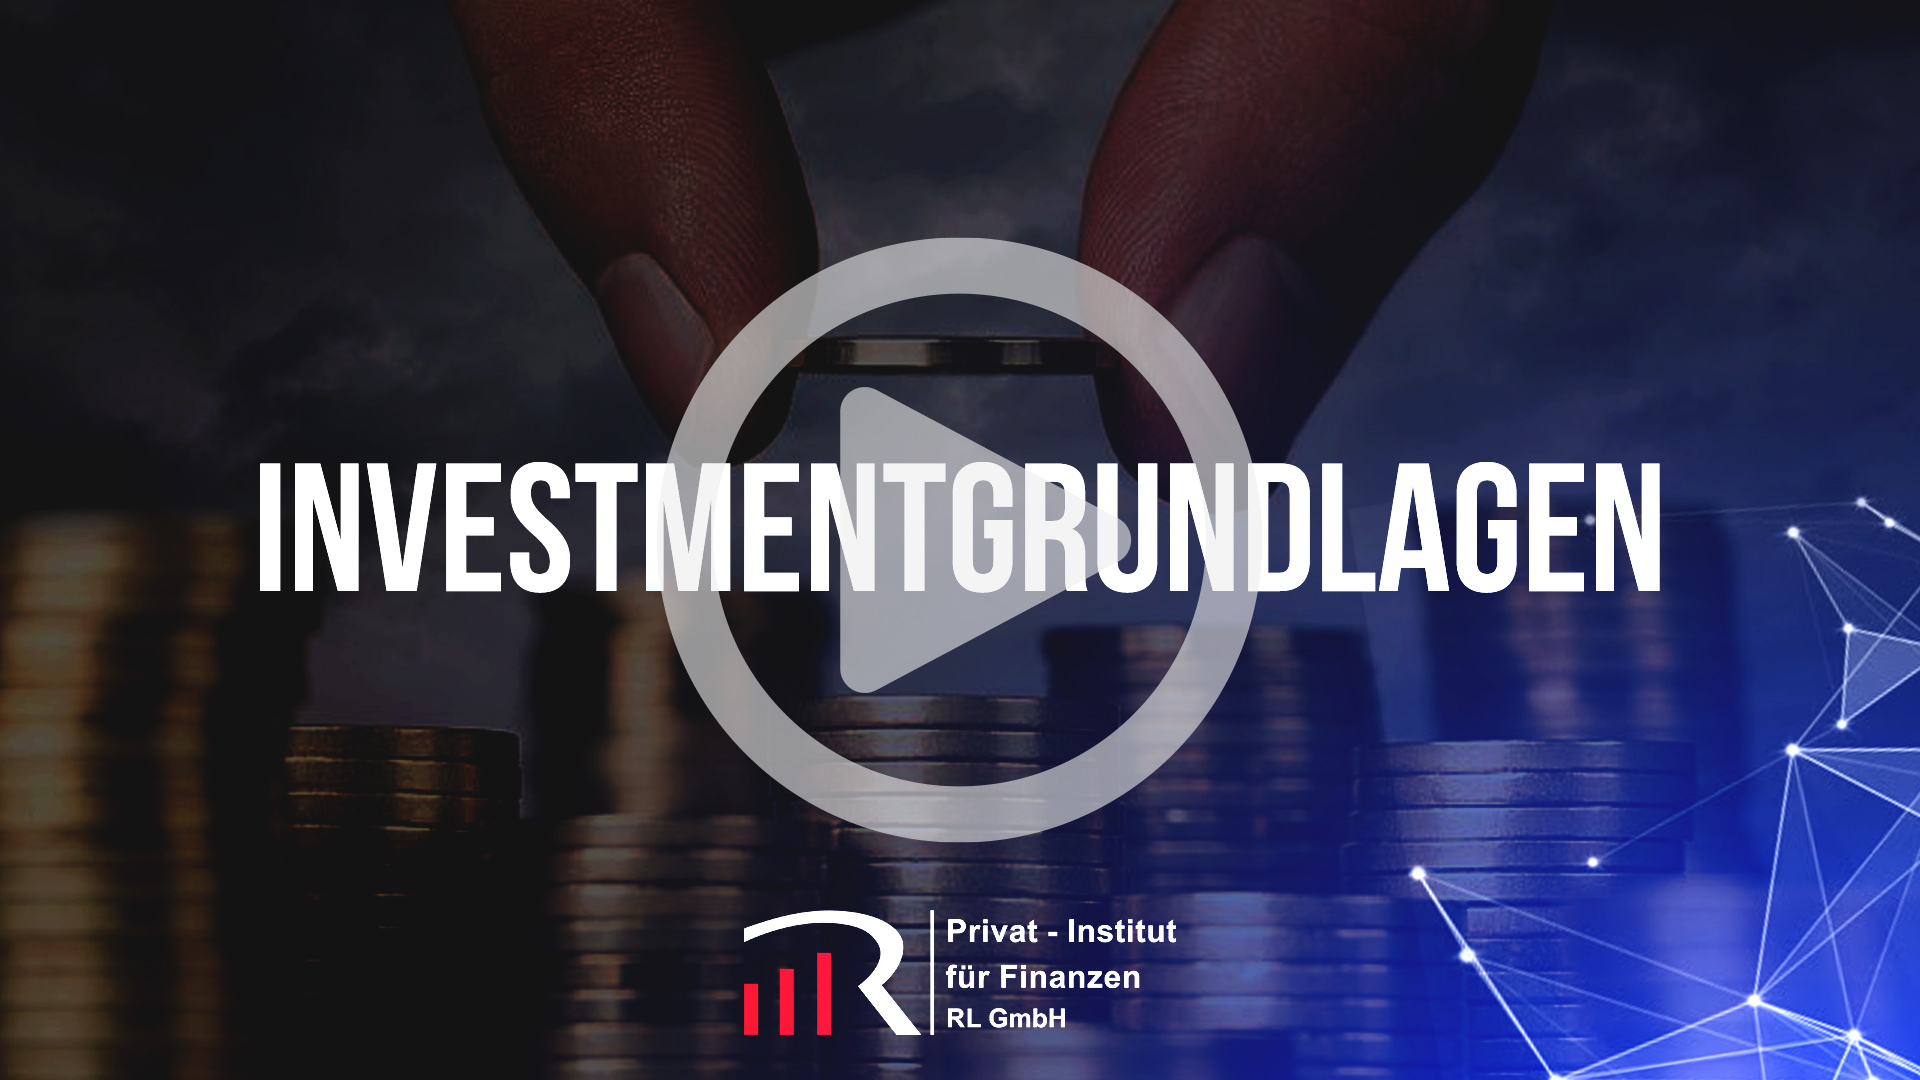 Investmentgrundlagen Video-Thumbnail